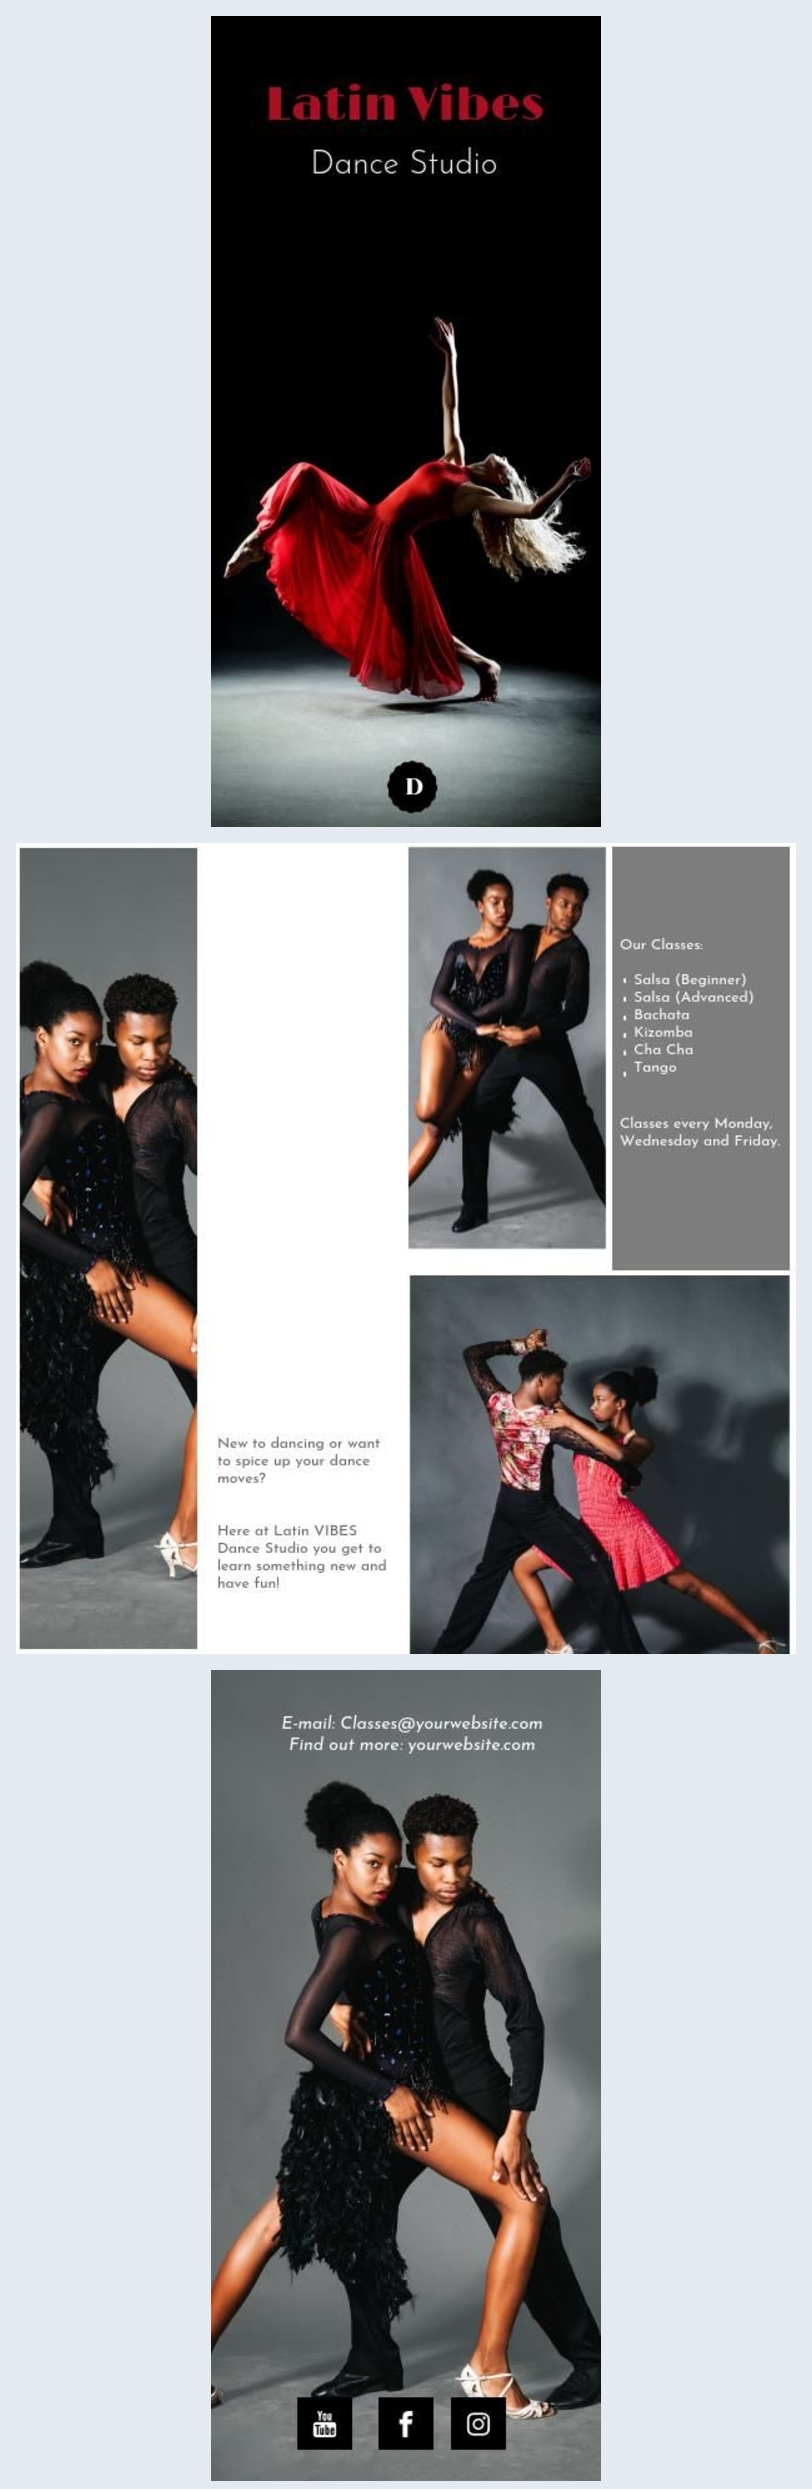 Dance Studio Bifold Brochure / Flyer Design